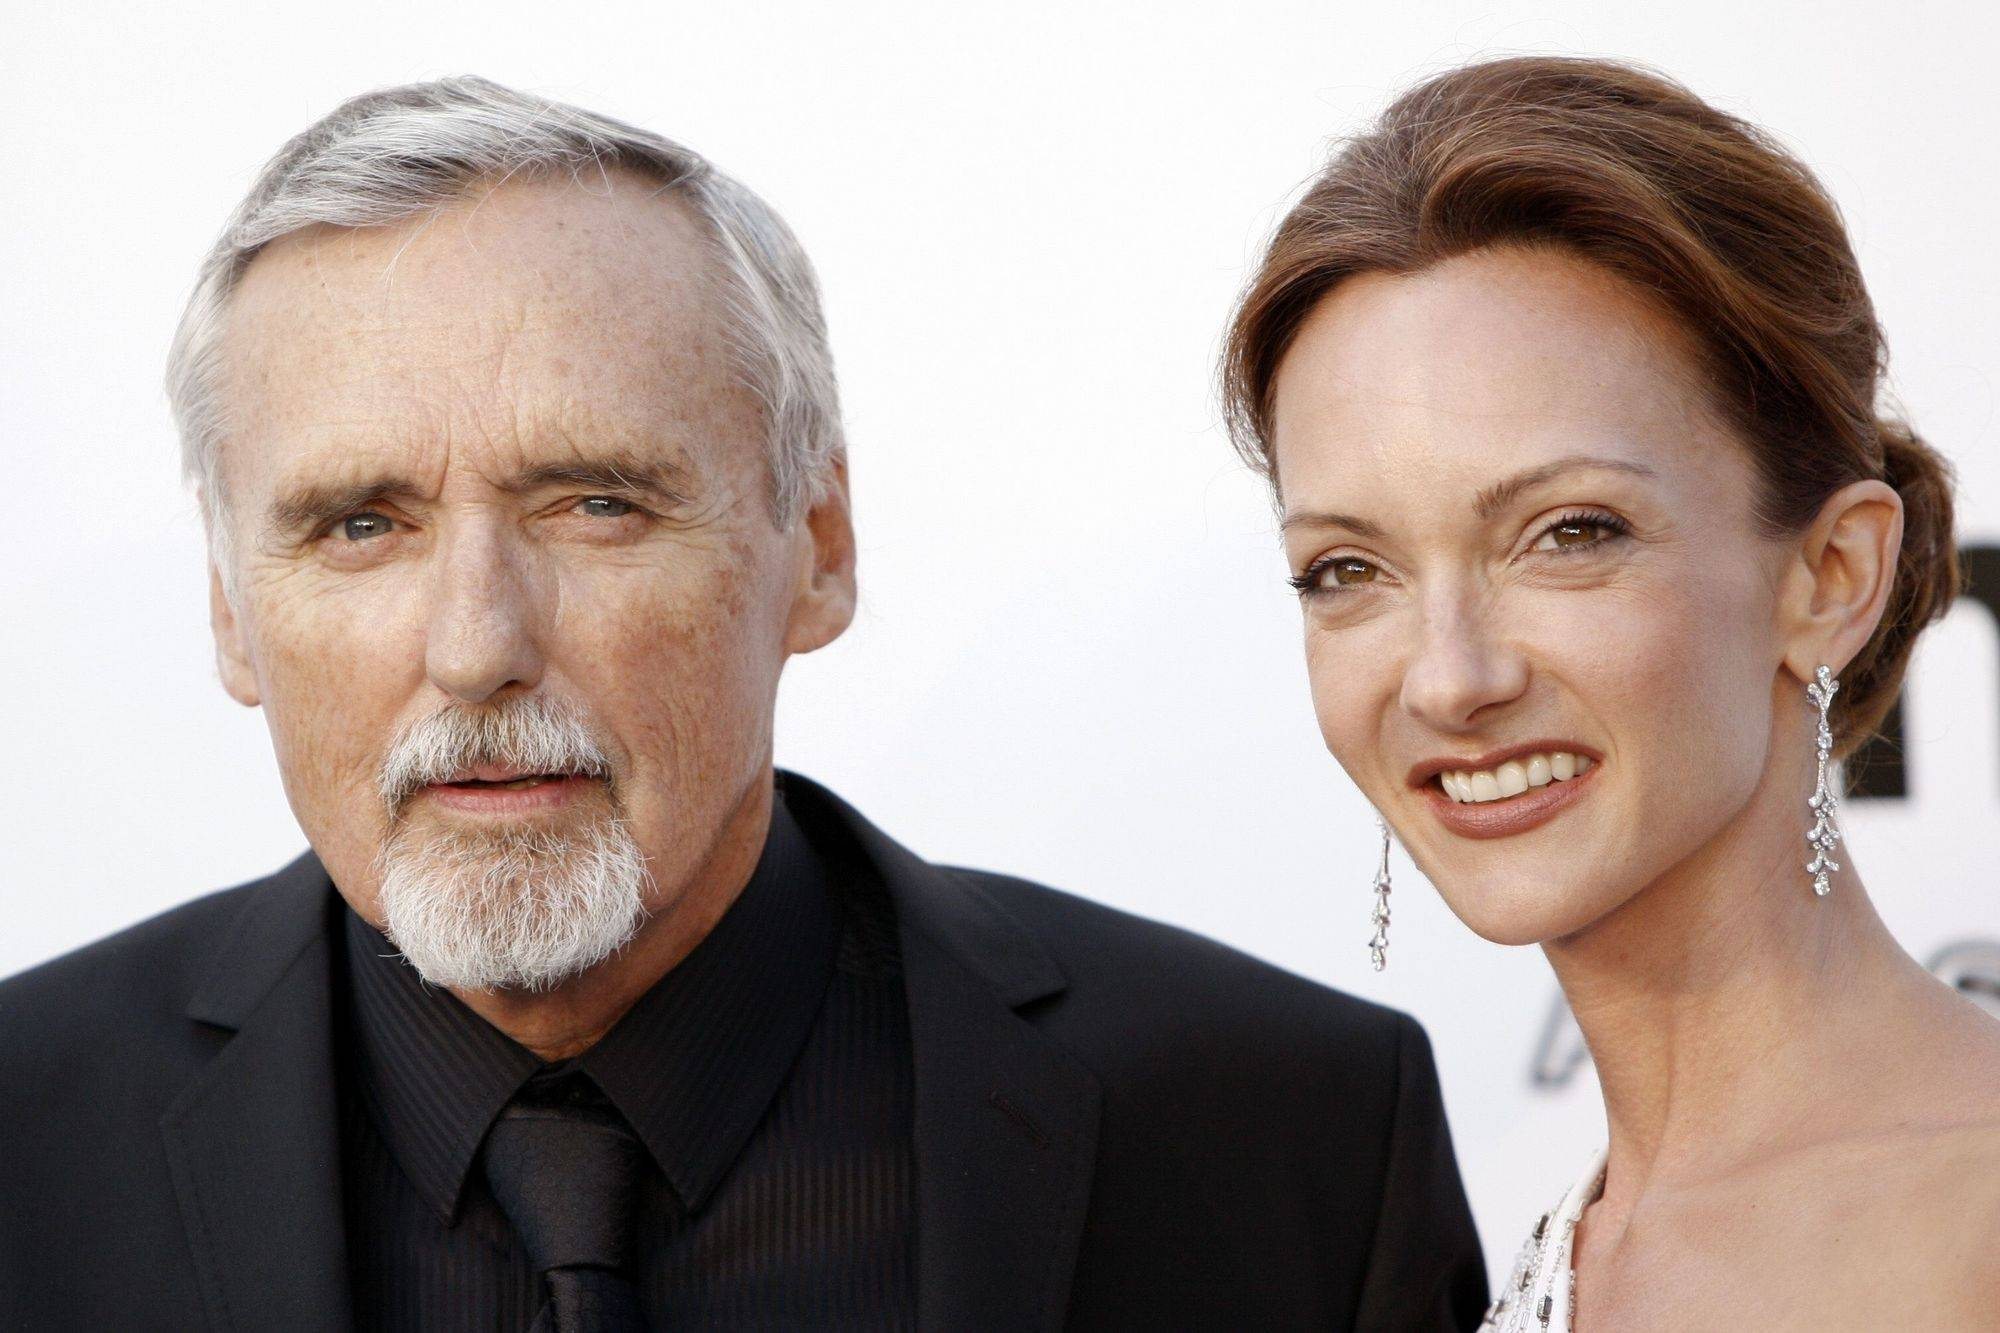 In this May 22, 2008 file photo, actor Dennis Hopper, left, and his wife Victoria Duffy Hopper arrive at the amfAR's annual Cinema Against AIDS 2008 gala at Le Moulin de Mougins, southern France.